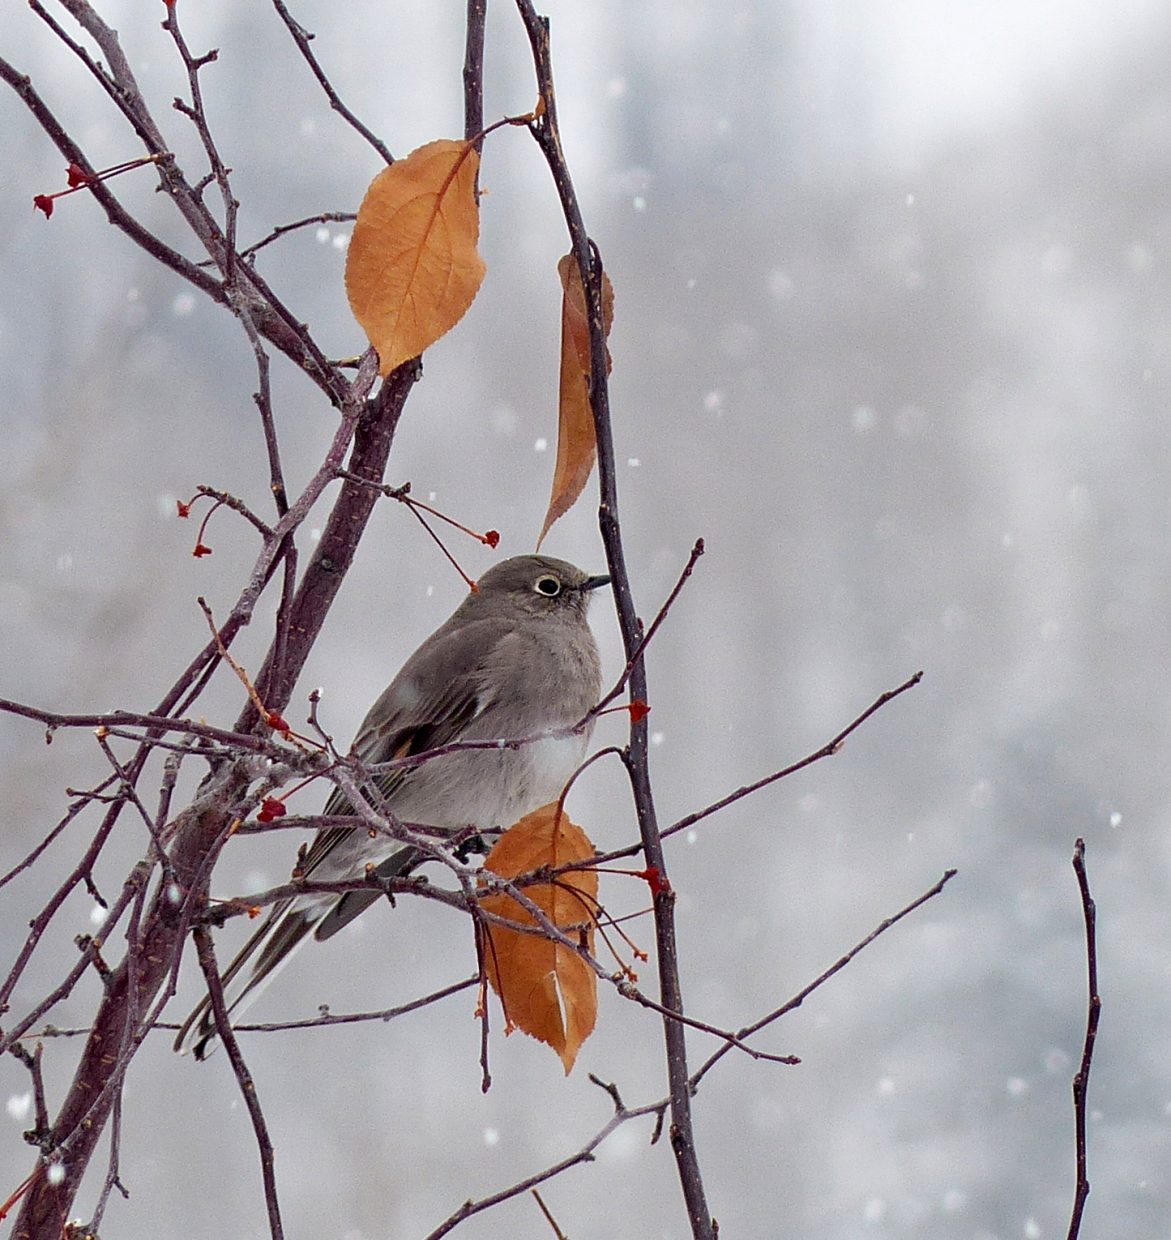 Townsend's solitaire seen during the 2014 Christmas Bird Count in Steamboat Springs. Submitted by: David Moulton